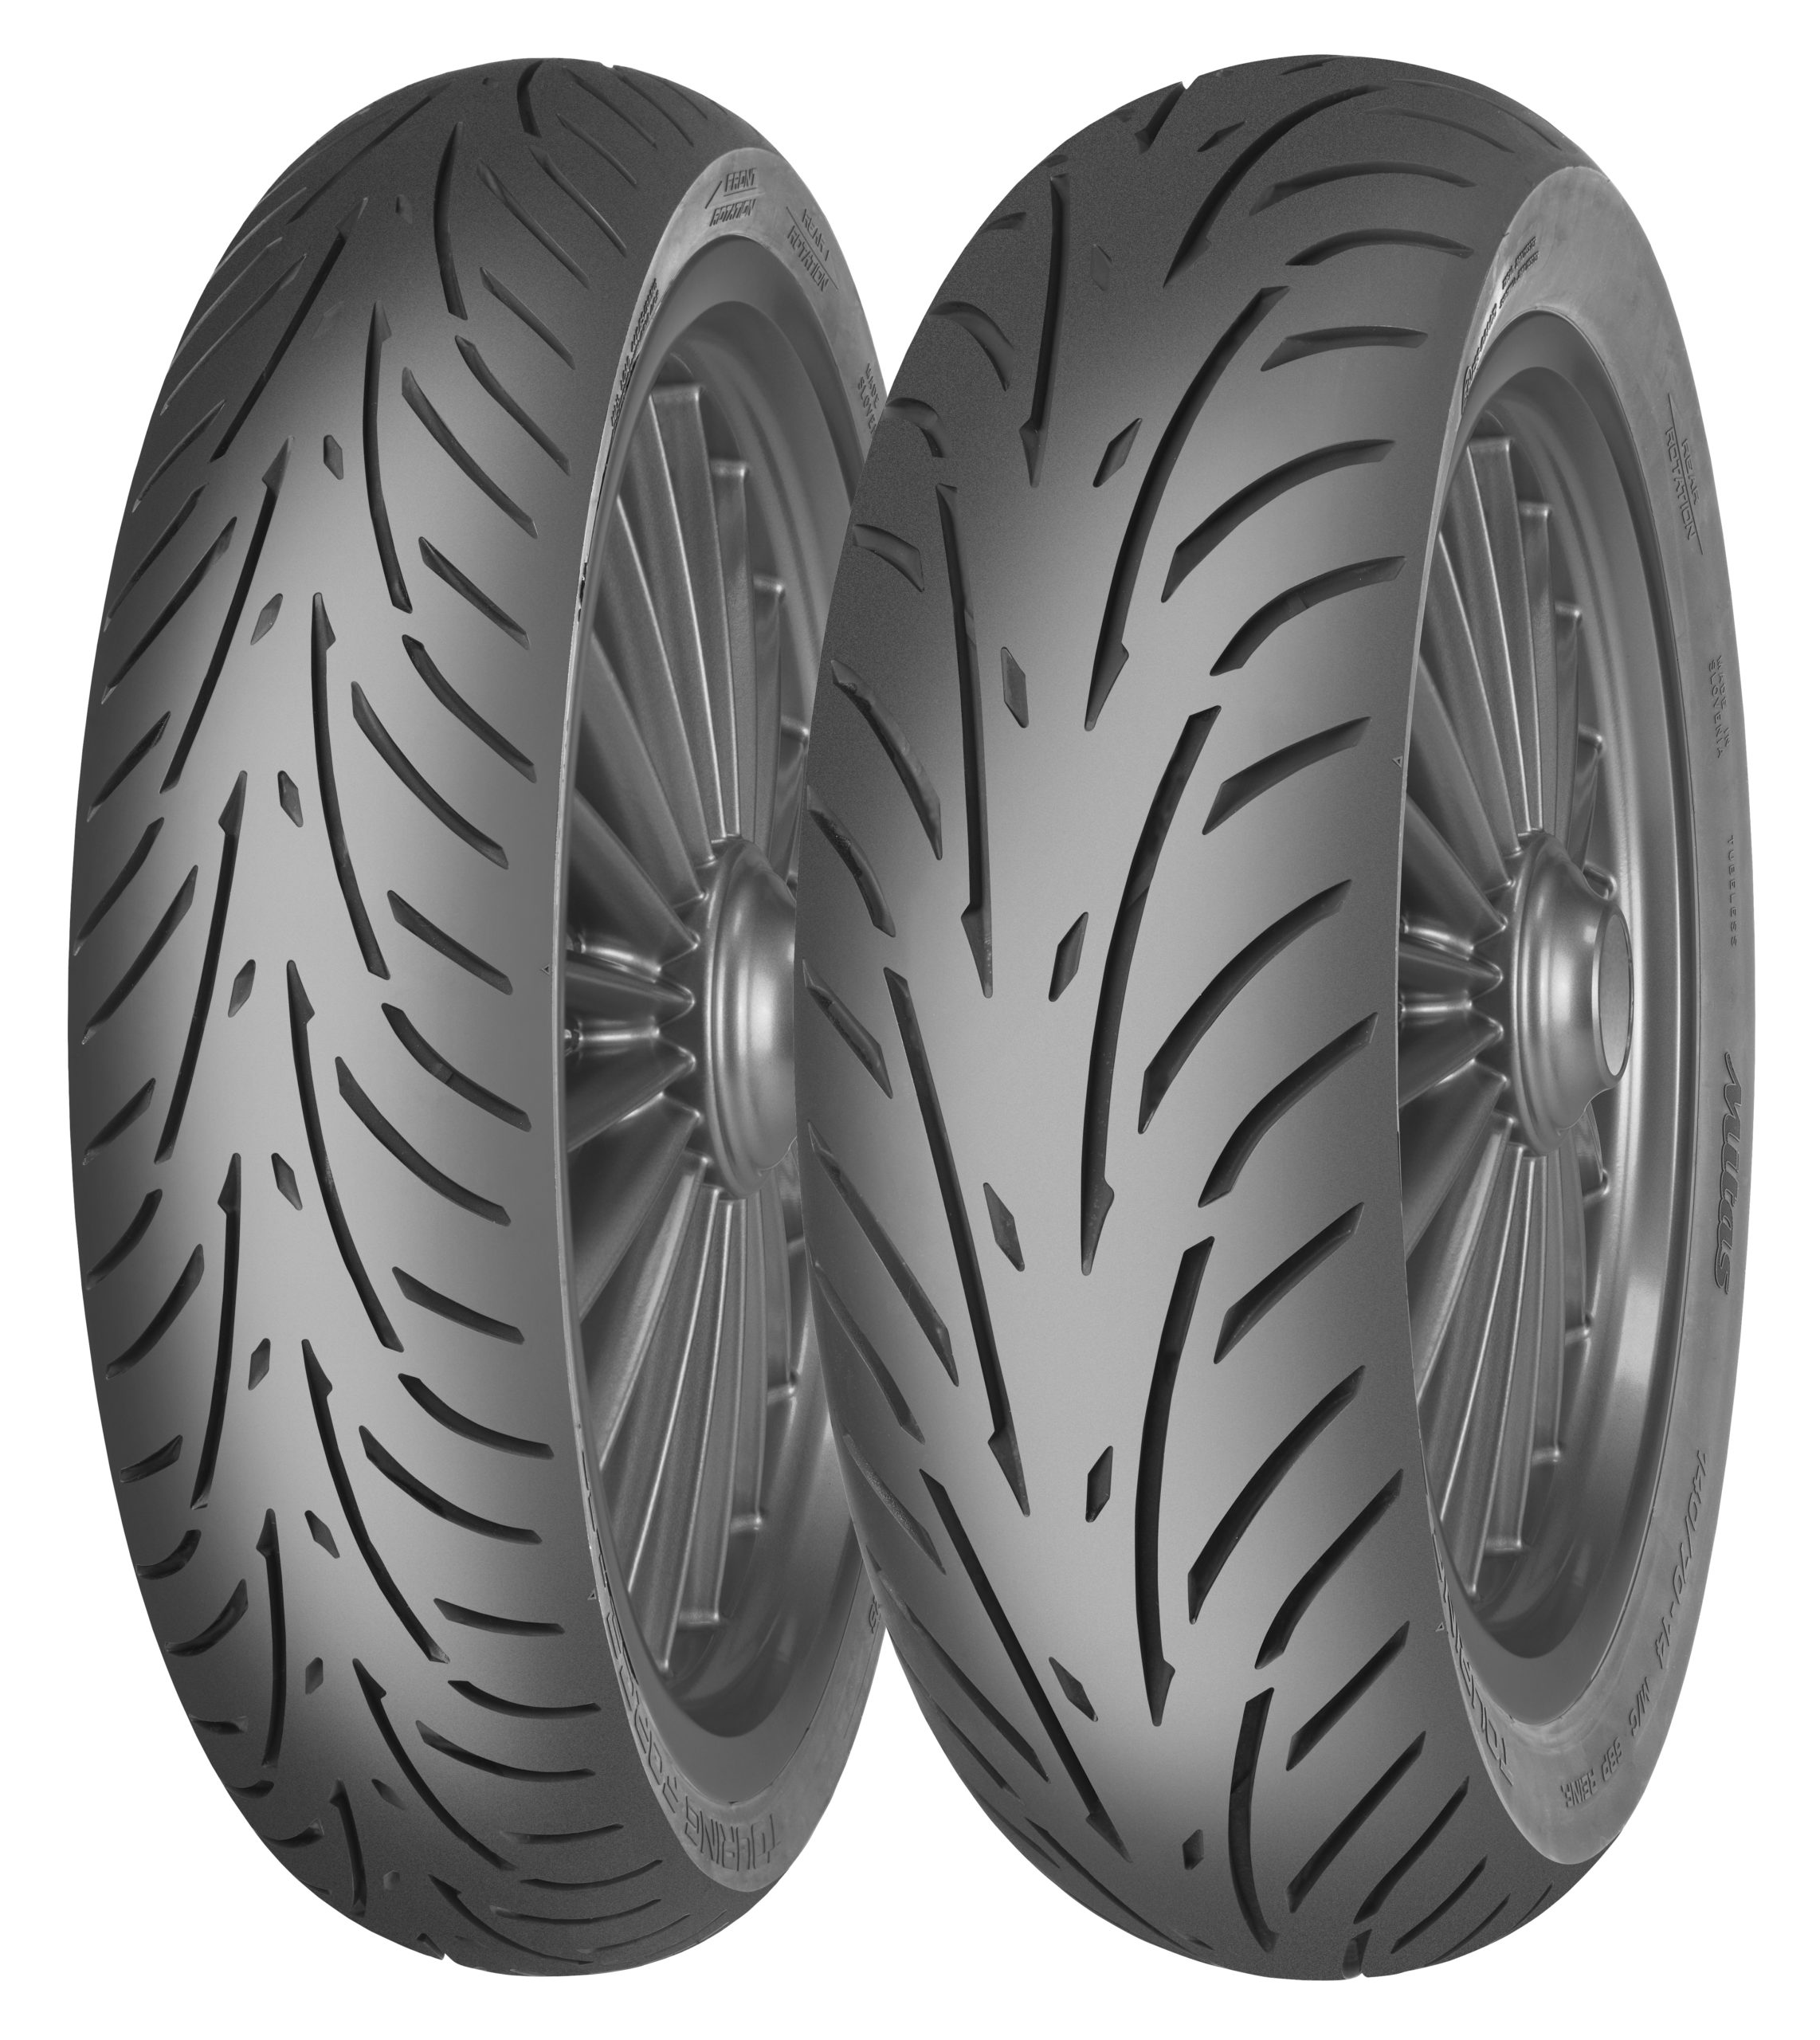 Anvelopa 140/70-12 65P TOURING FORCE-SC R TL MITAS